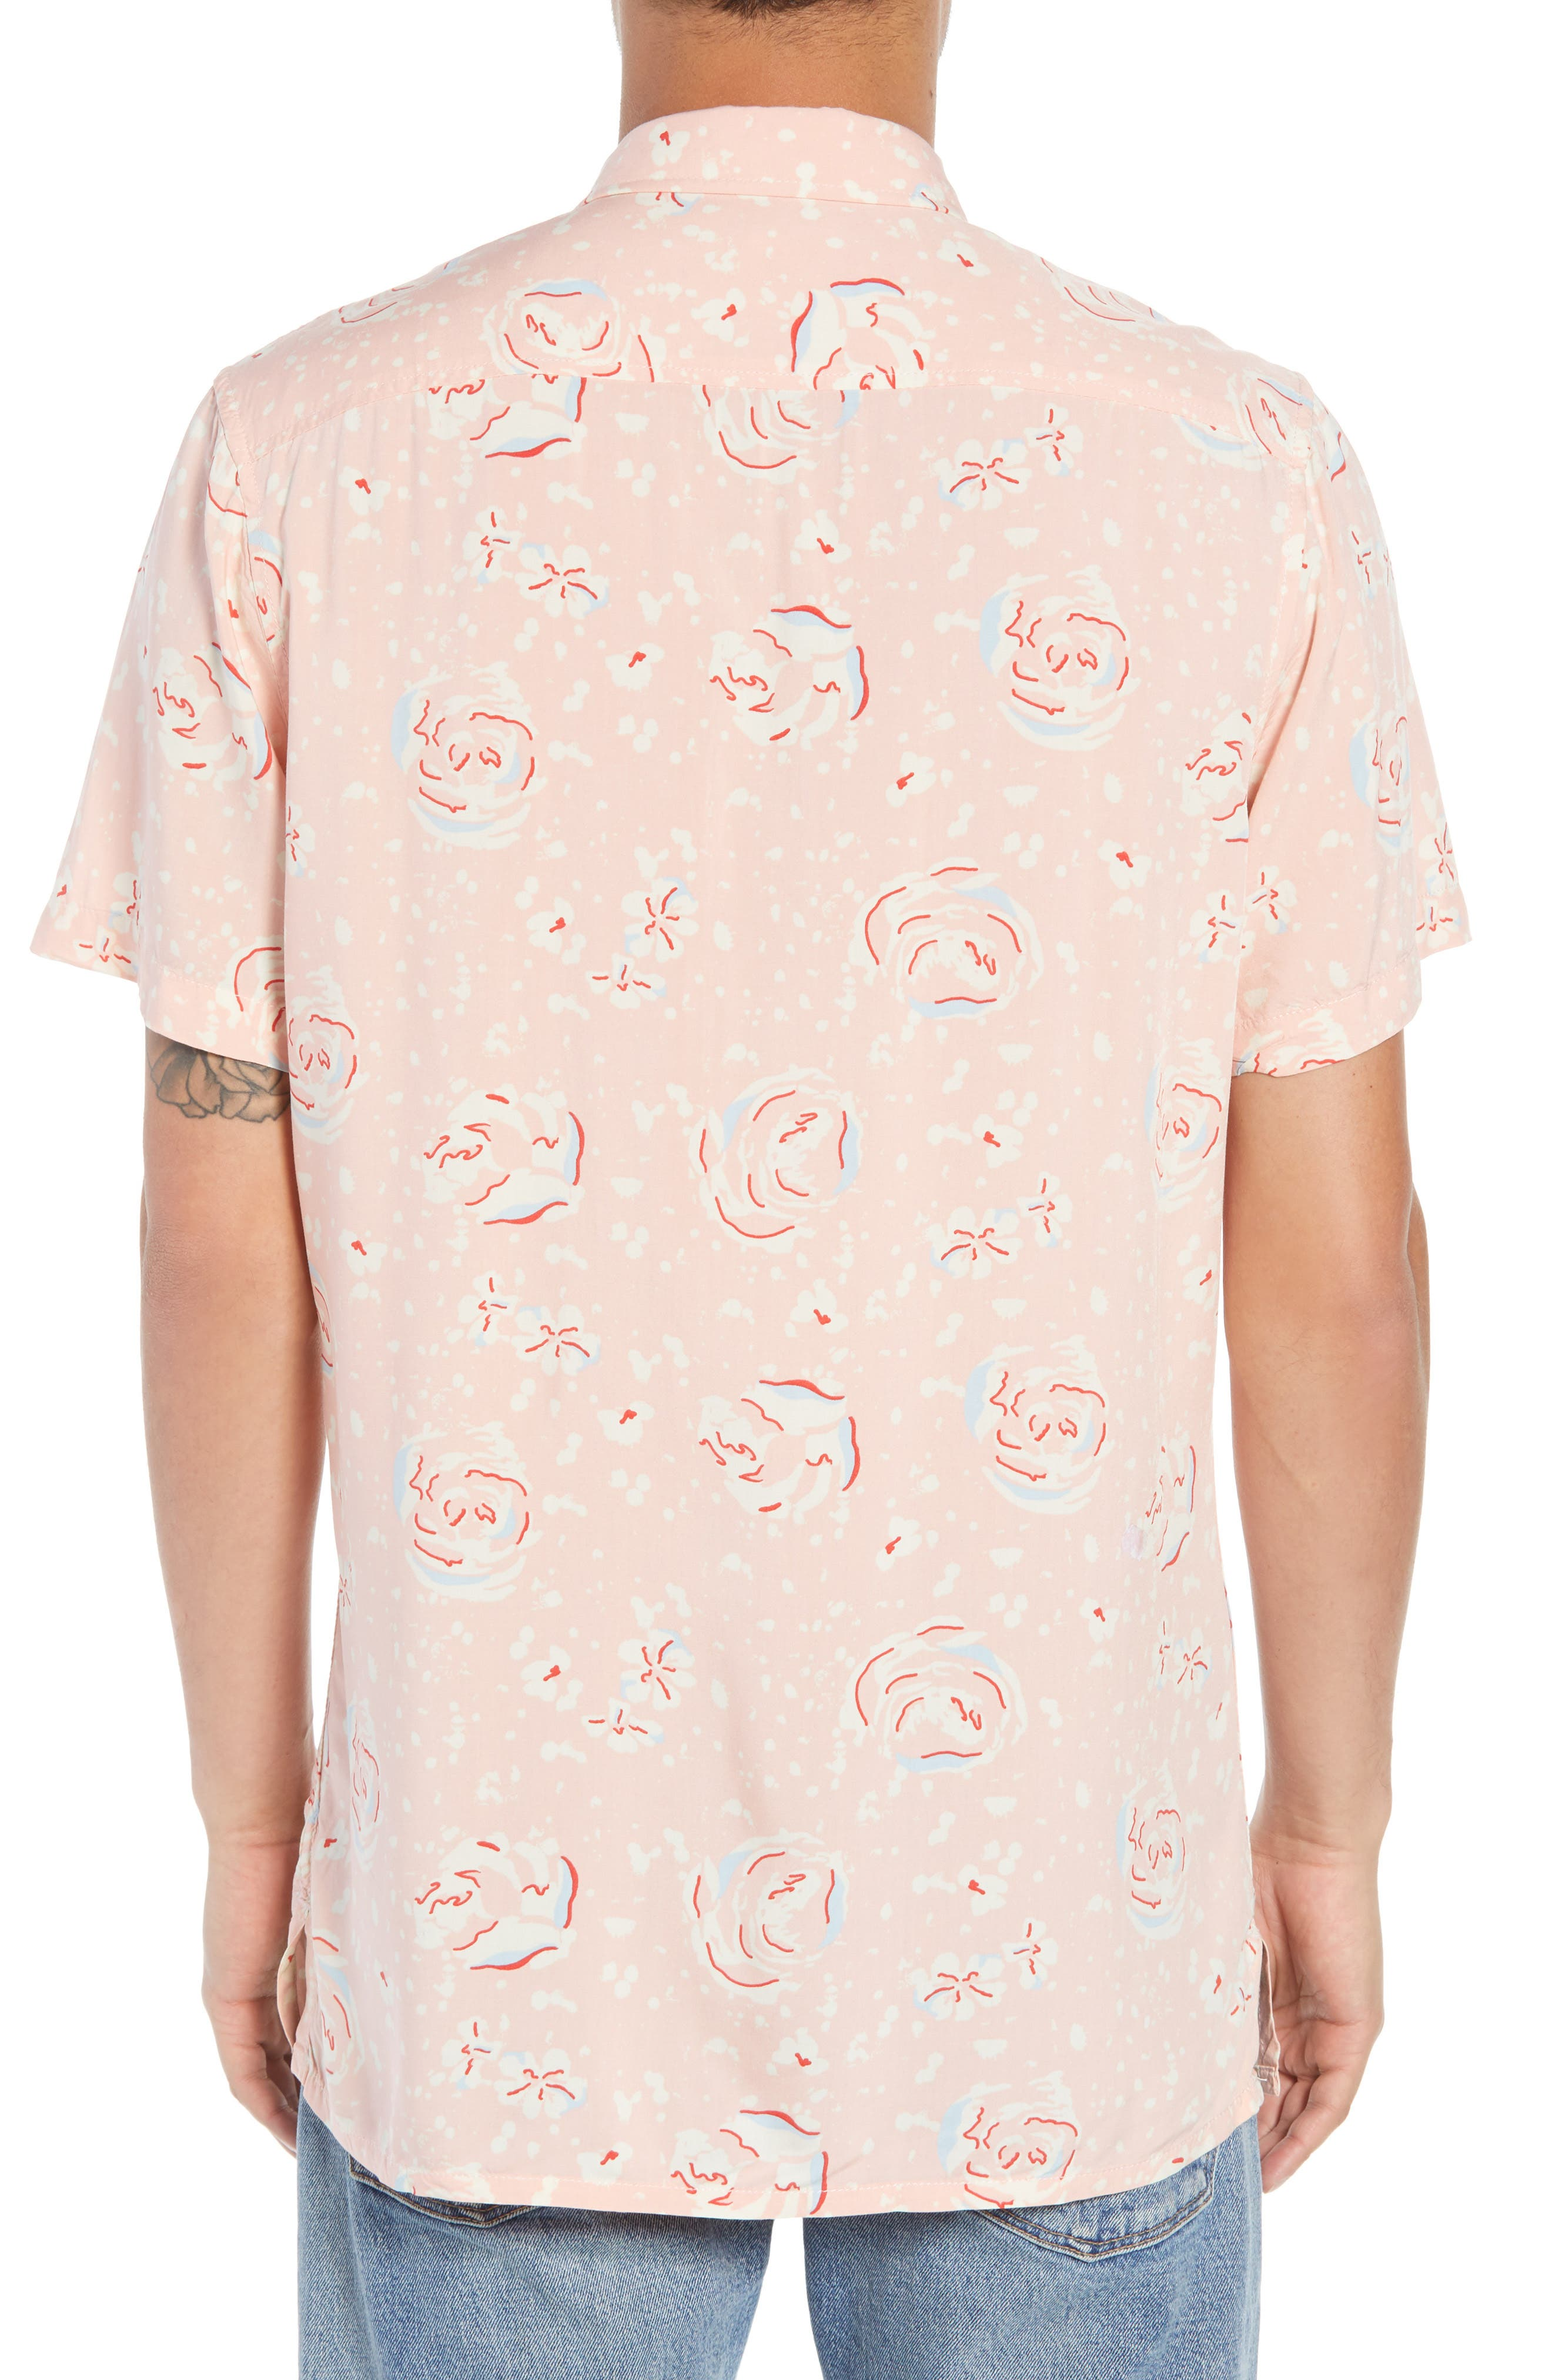 Print Woven Shirt,                             Alternate thumbnail 5, color,                             Pink Silver Abstract Floral